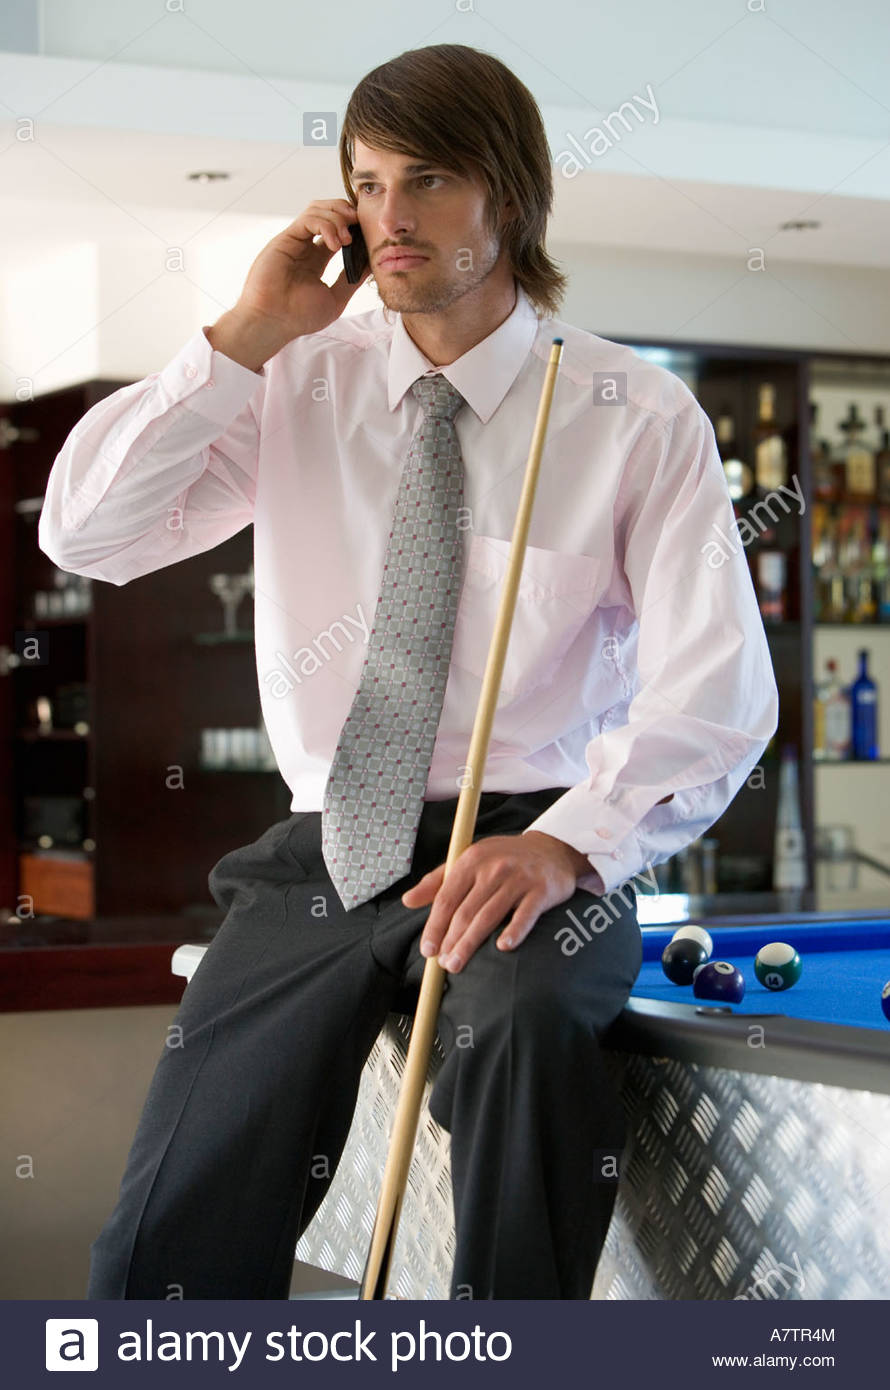 A businessman playing pool in a bar - Stock Image